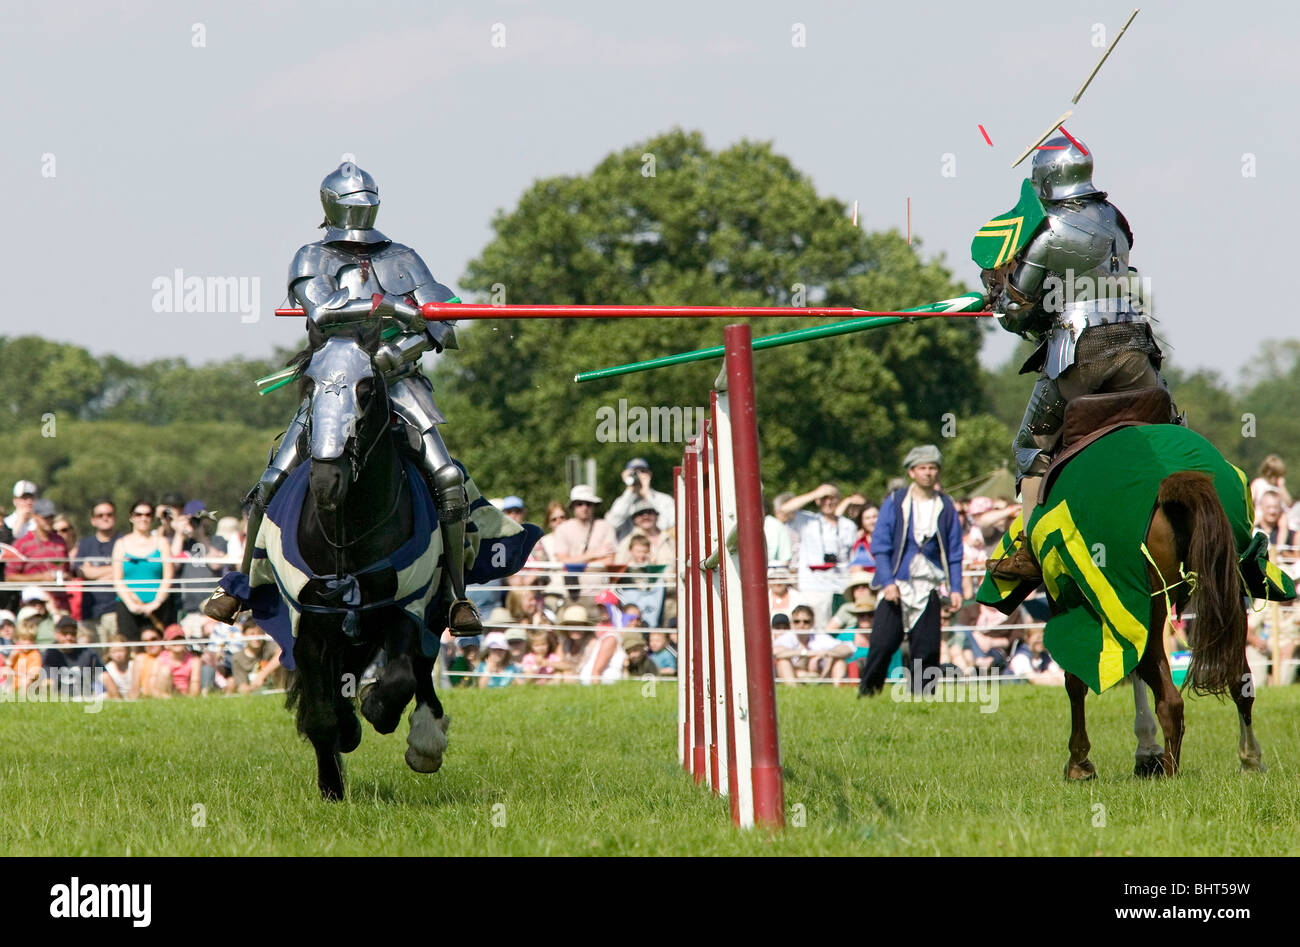 medieval jousting competition stock photo 28190565 alamy